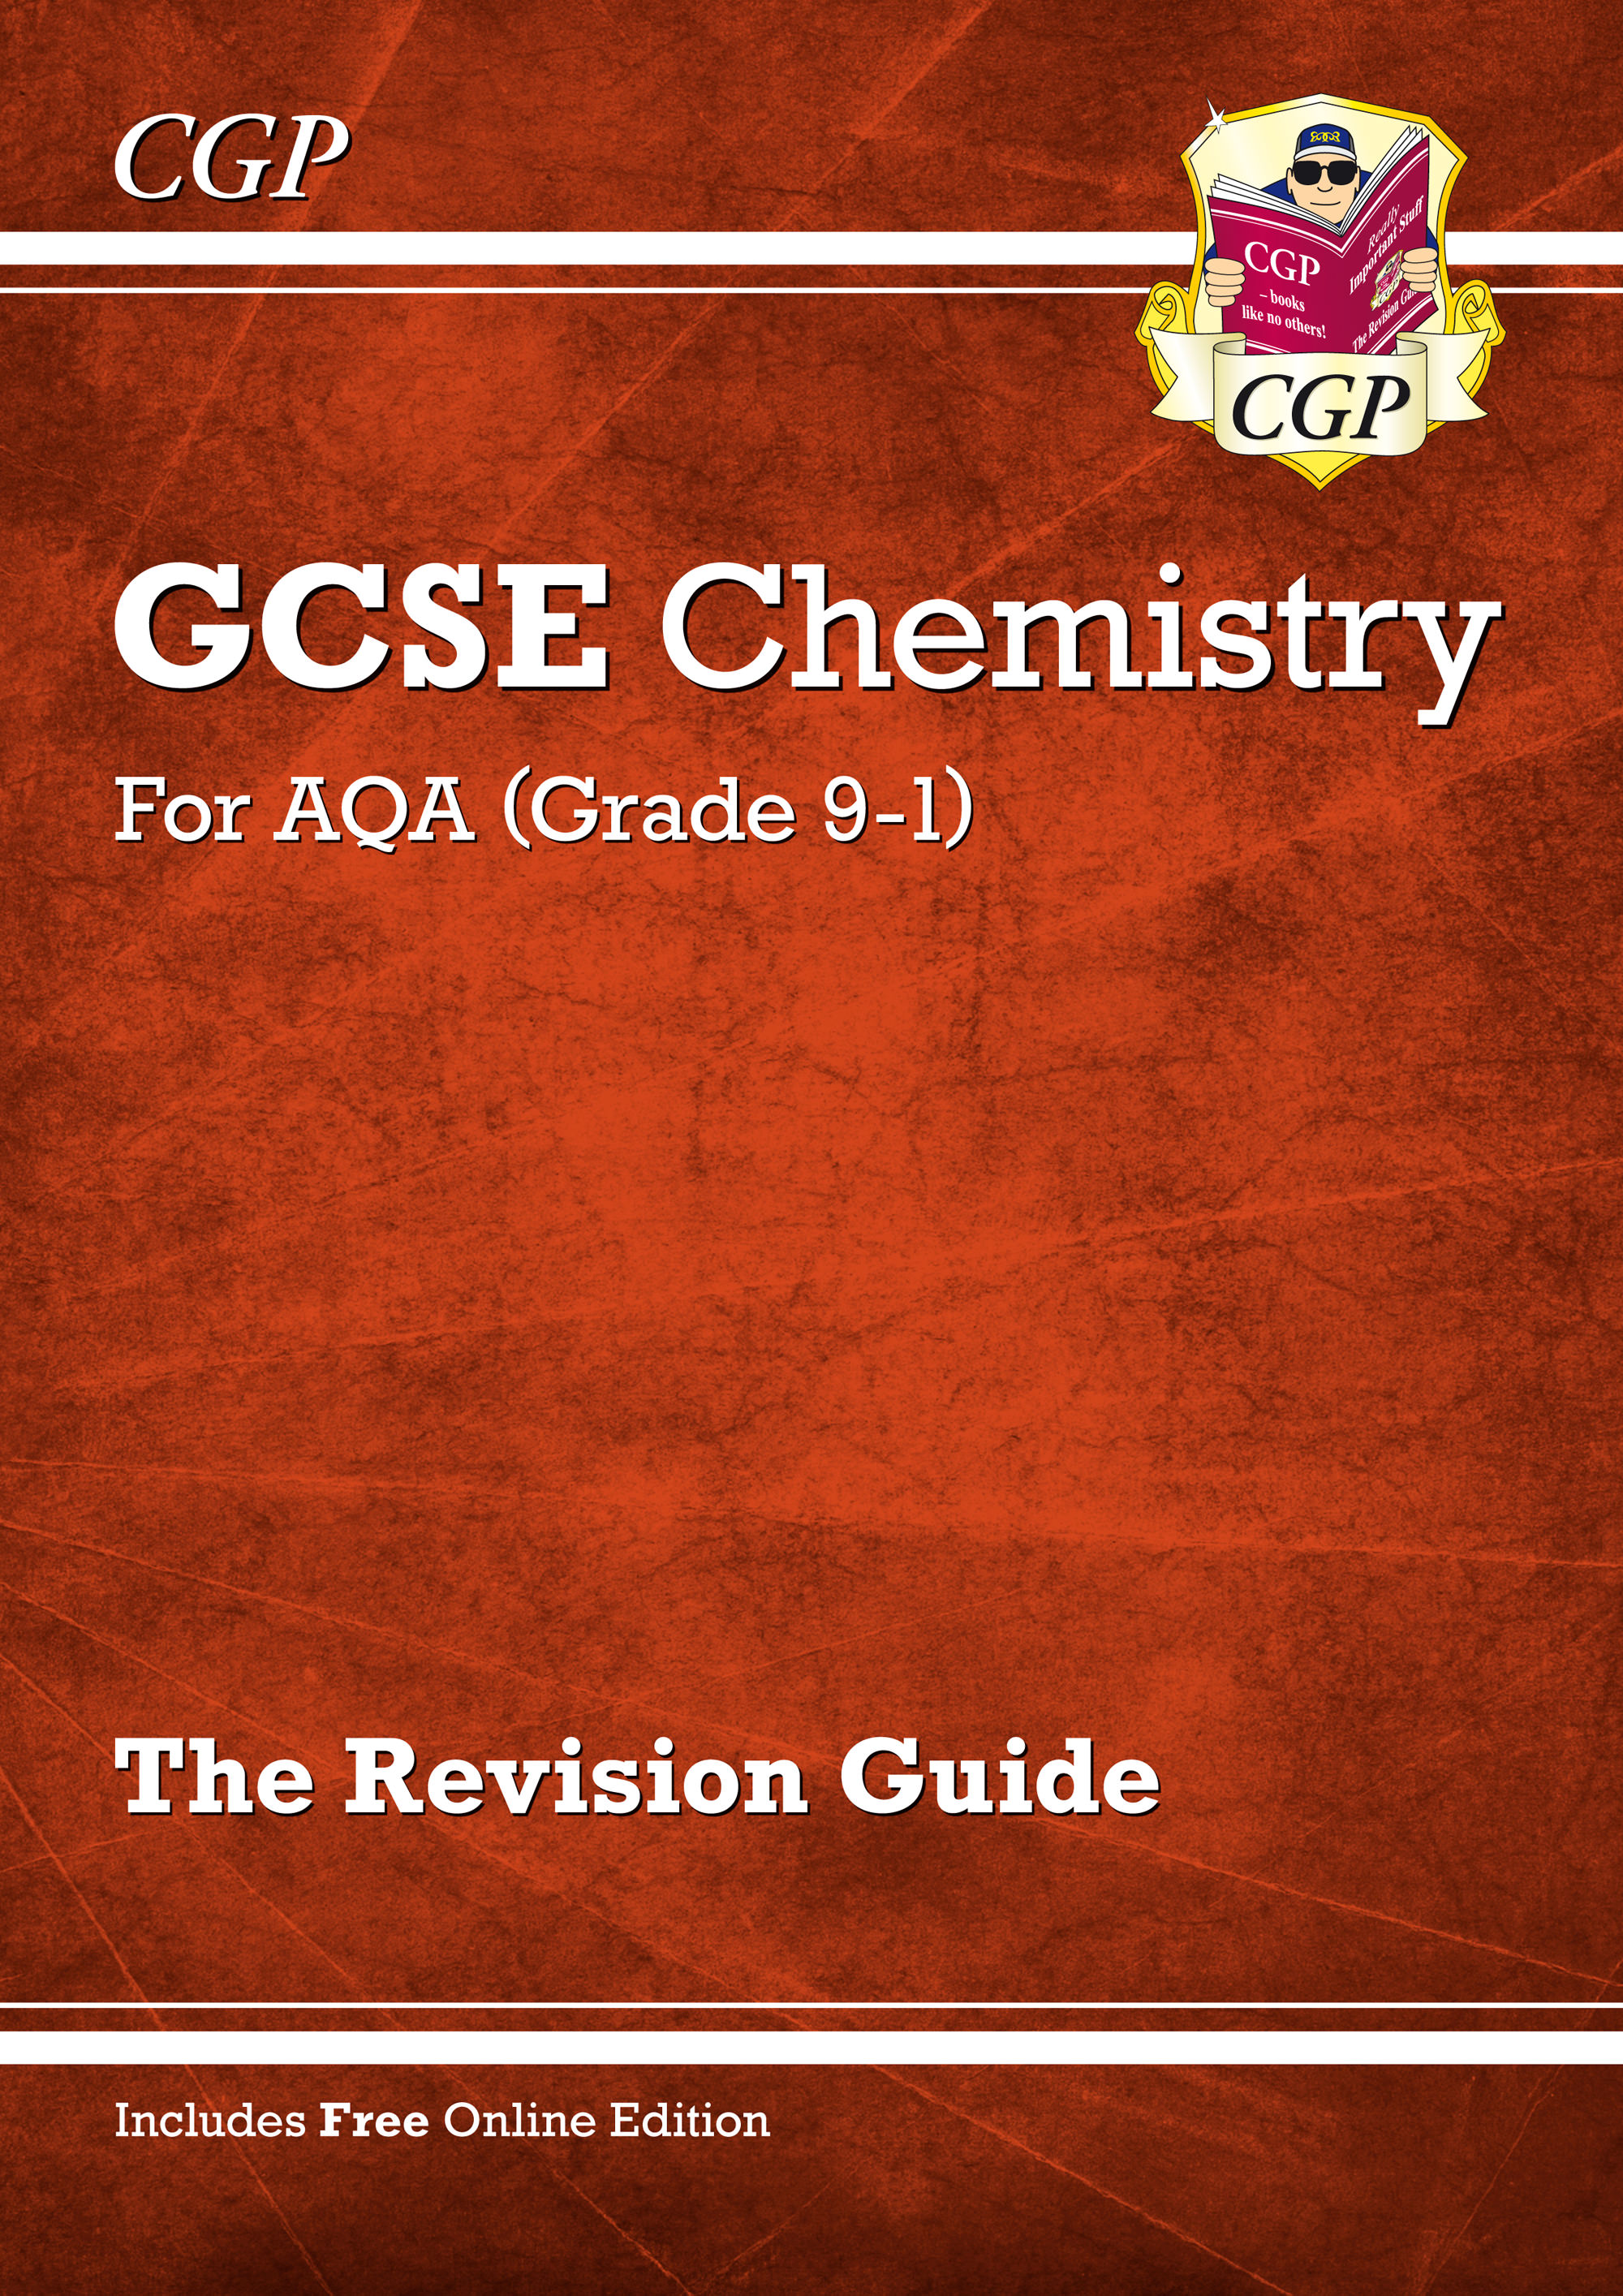 CAR45 - New Grade 9-1 GCSE Chemistry: AQA Revision Guide with Online Edition